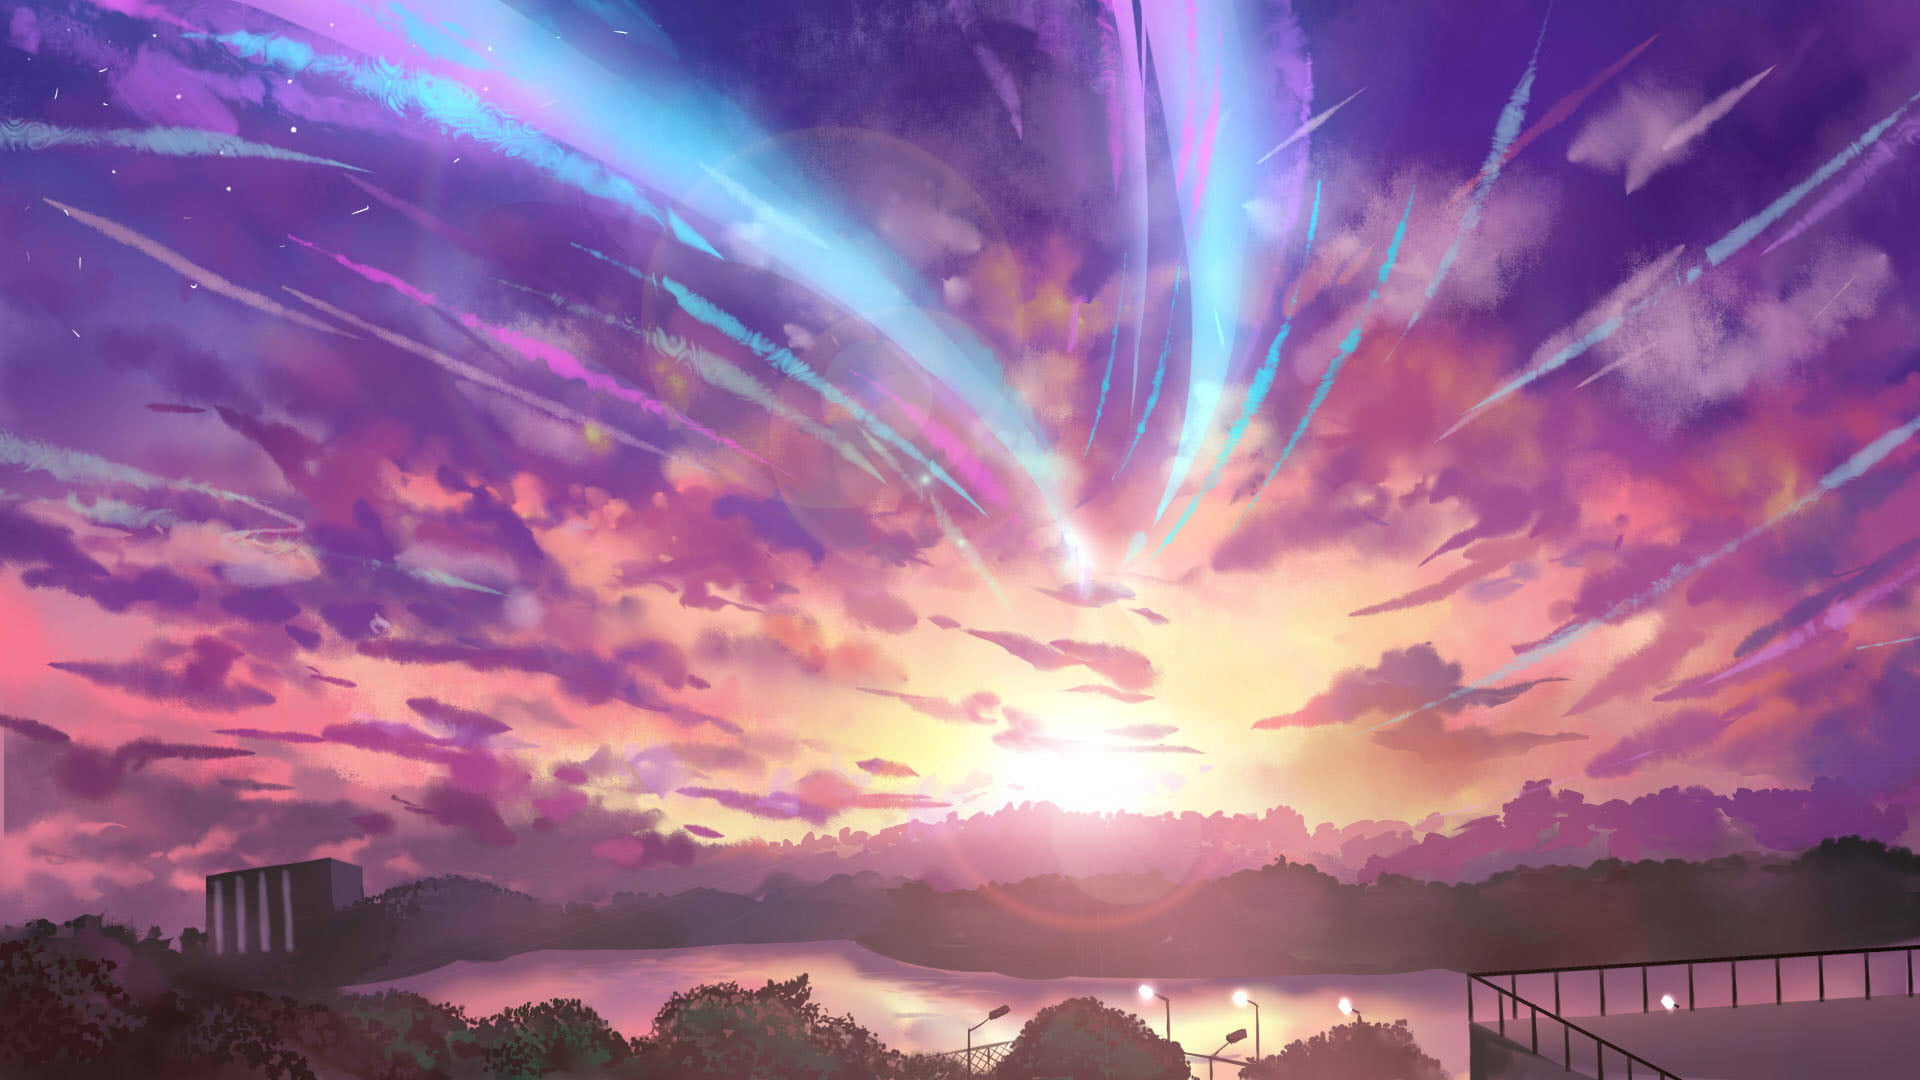 Wallpaper 1920x1080 Your Name